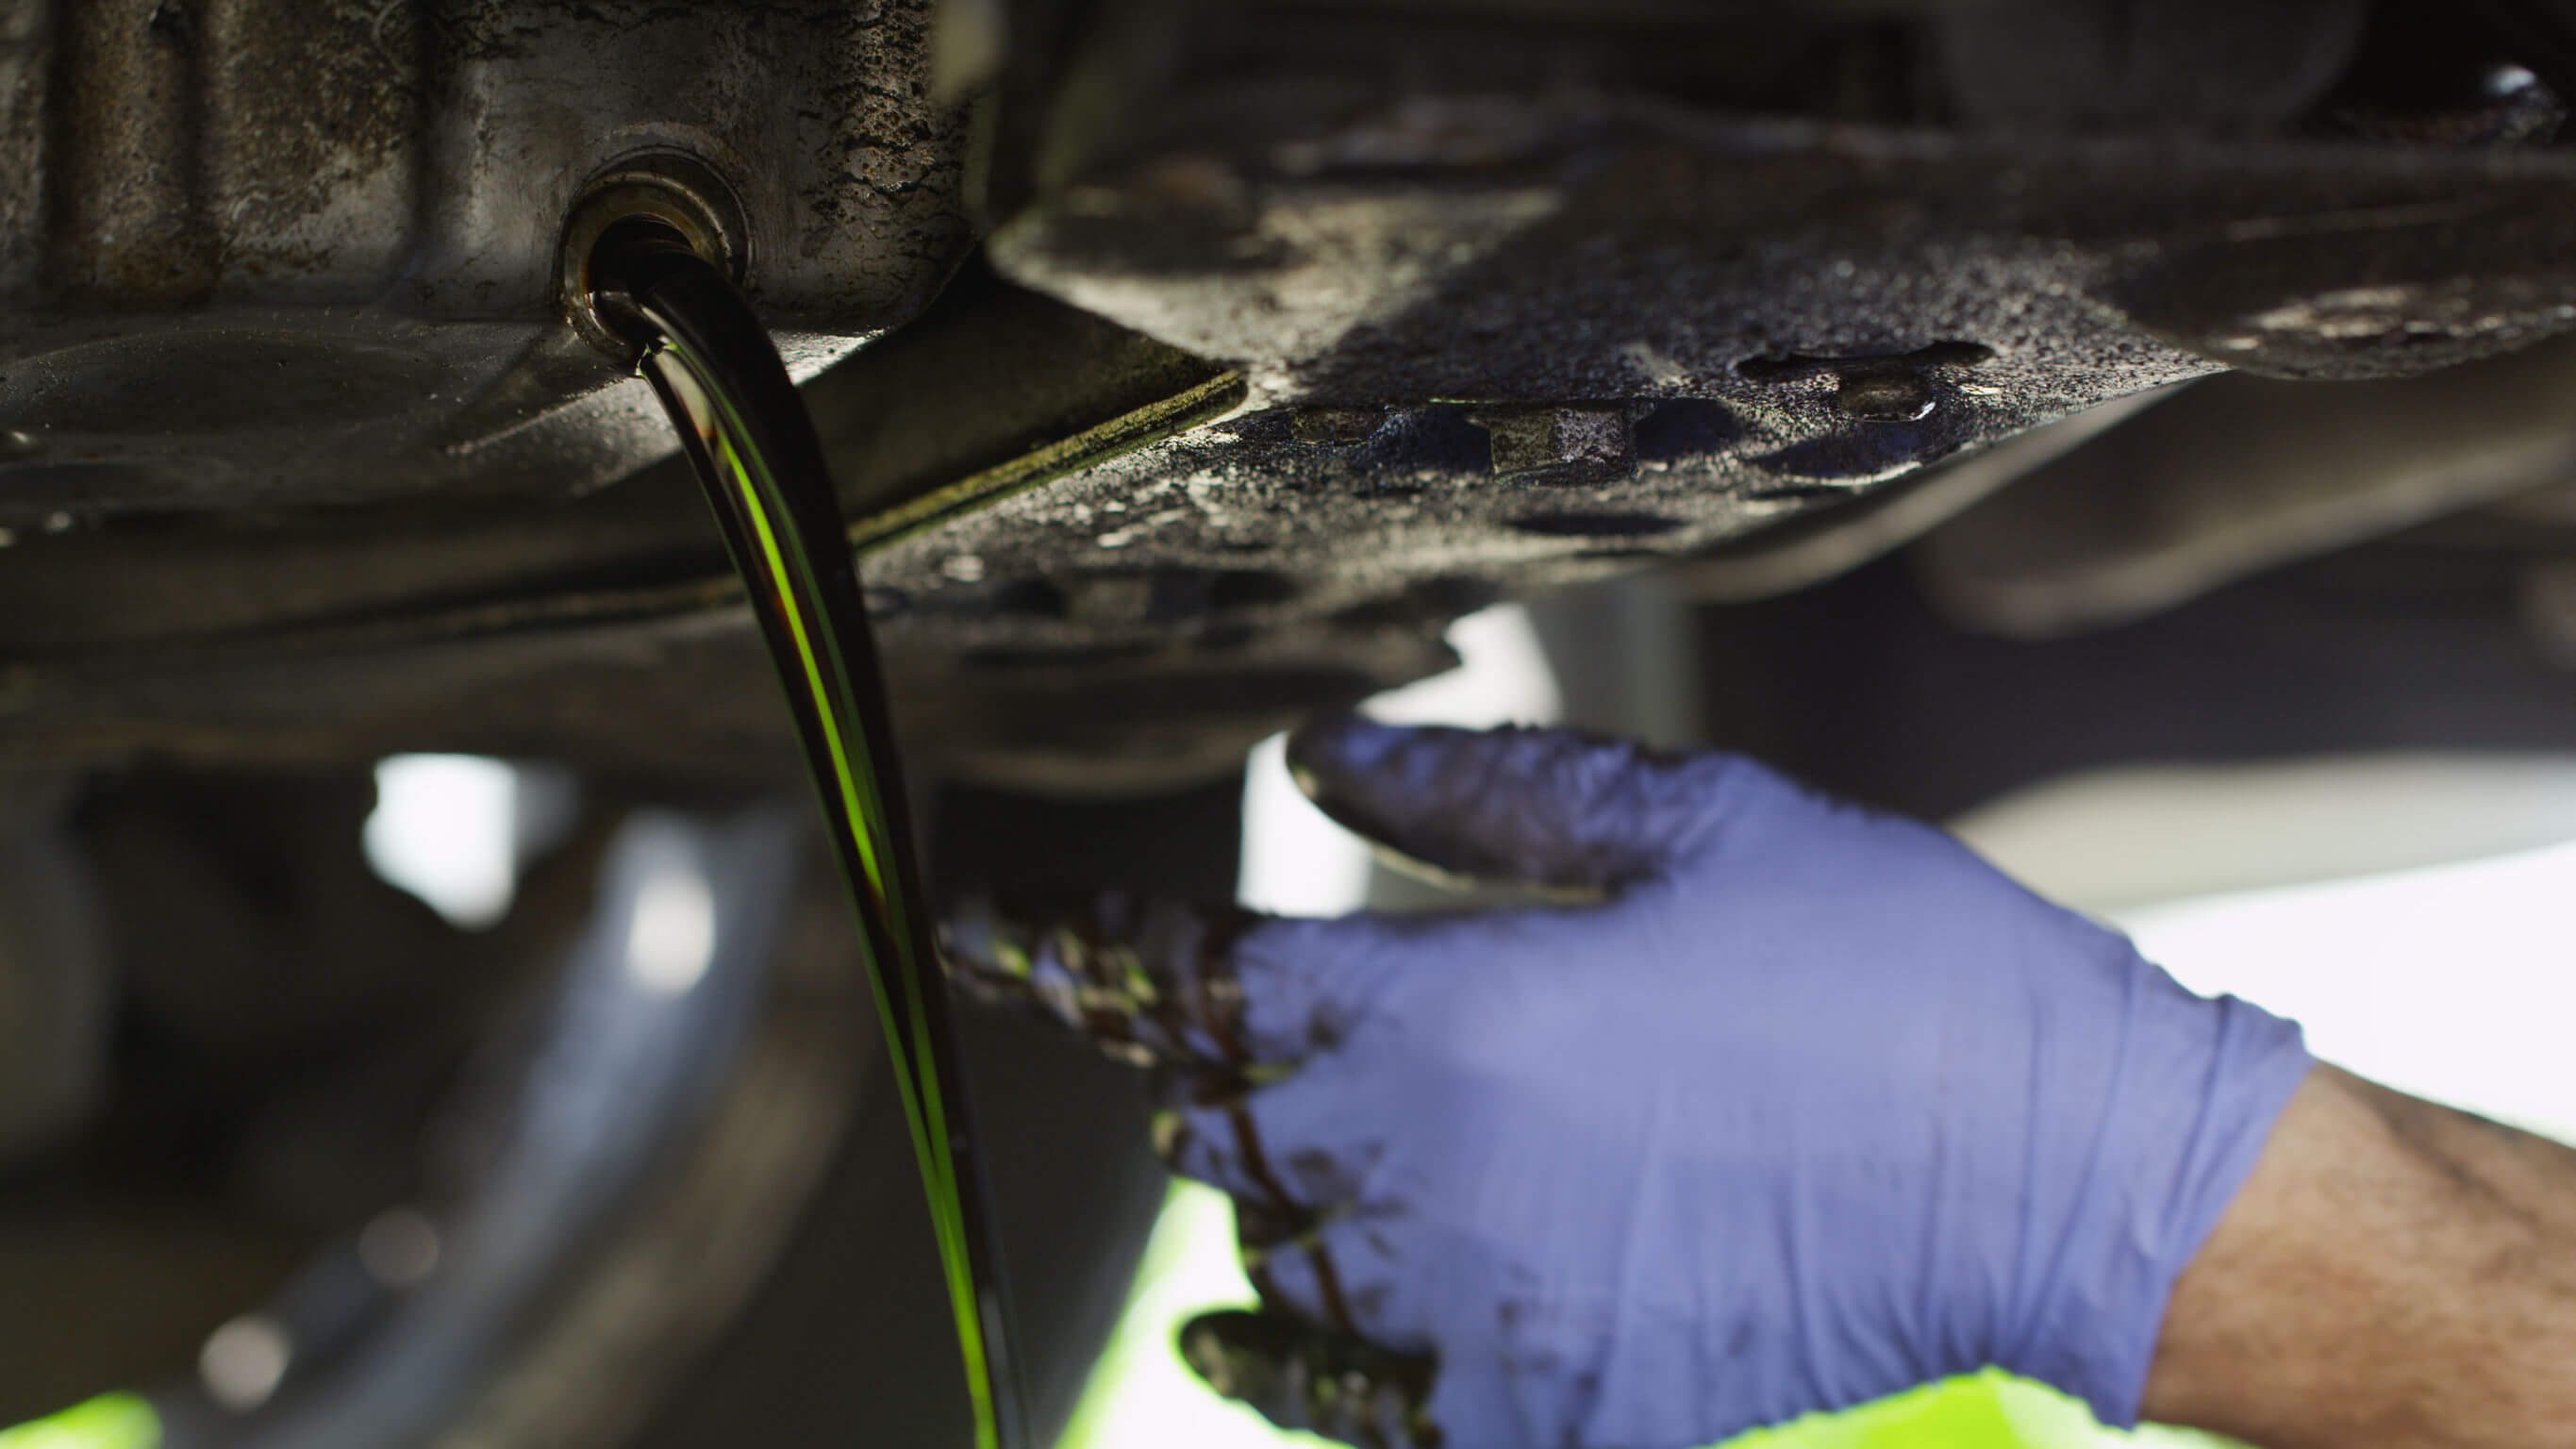 The importance of Oil Changes |Spiteri's Auto Repair in Belmont